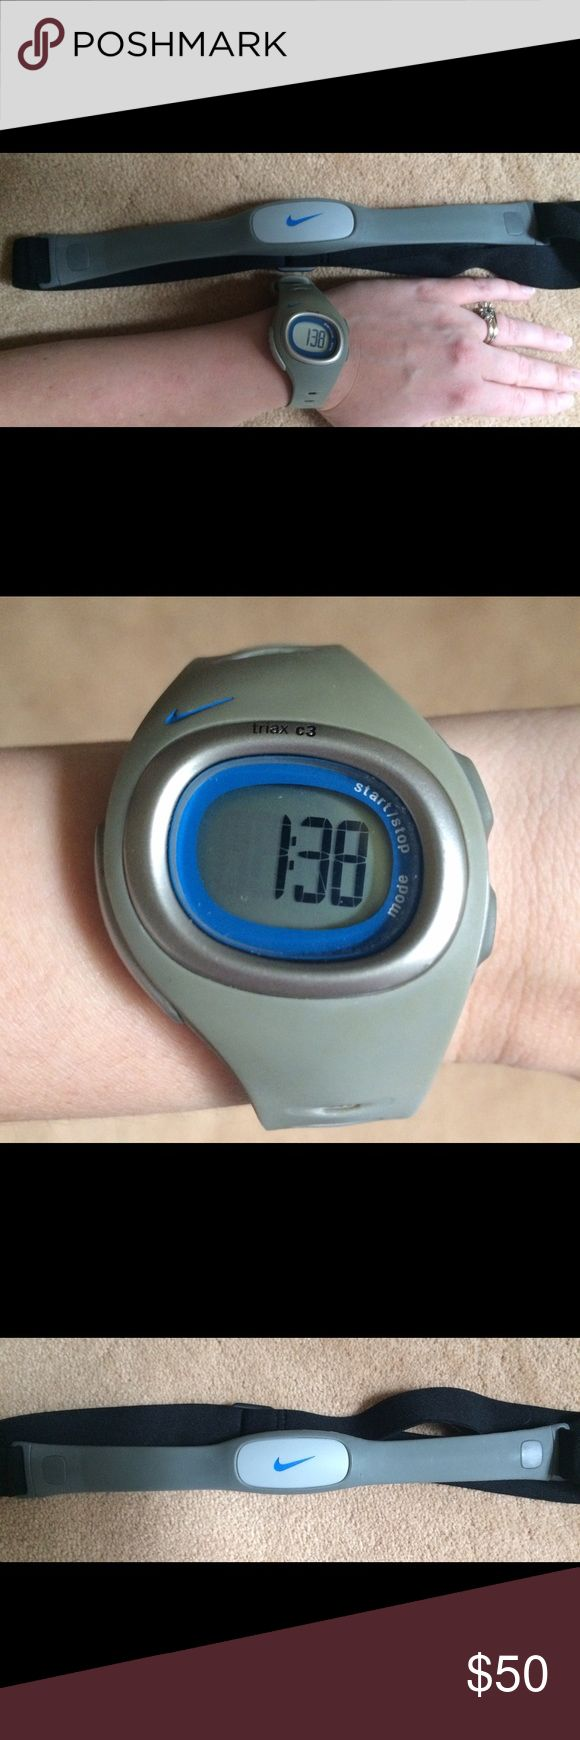 Nike Watch Nike Triax C3 watch with heart monitor. In great condition. Never used the heart monitor. Nike Accessories Watches